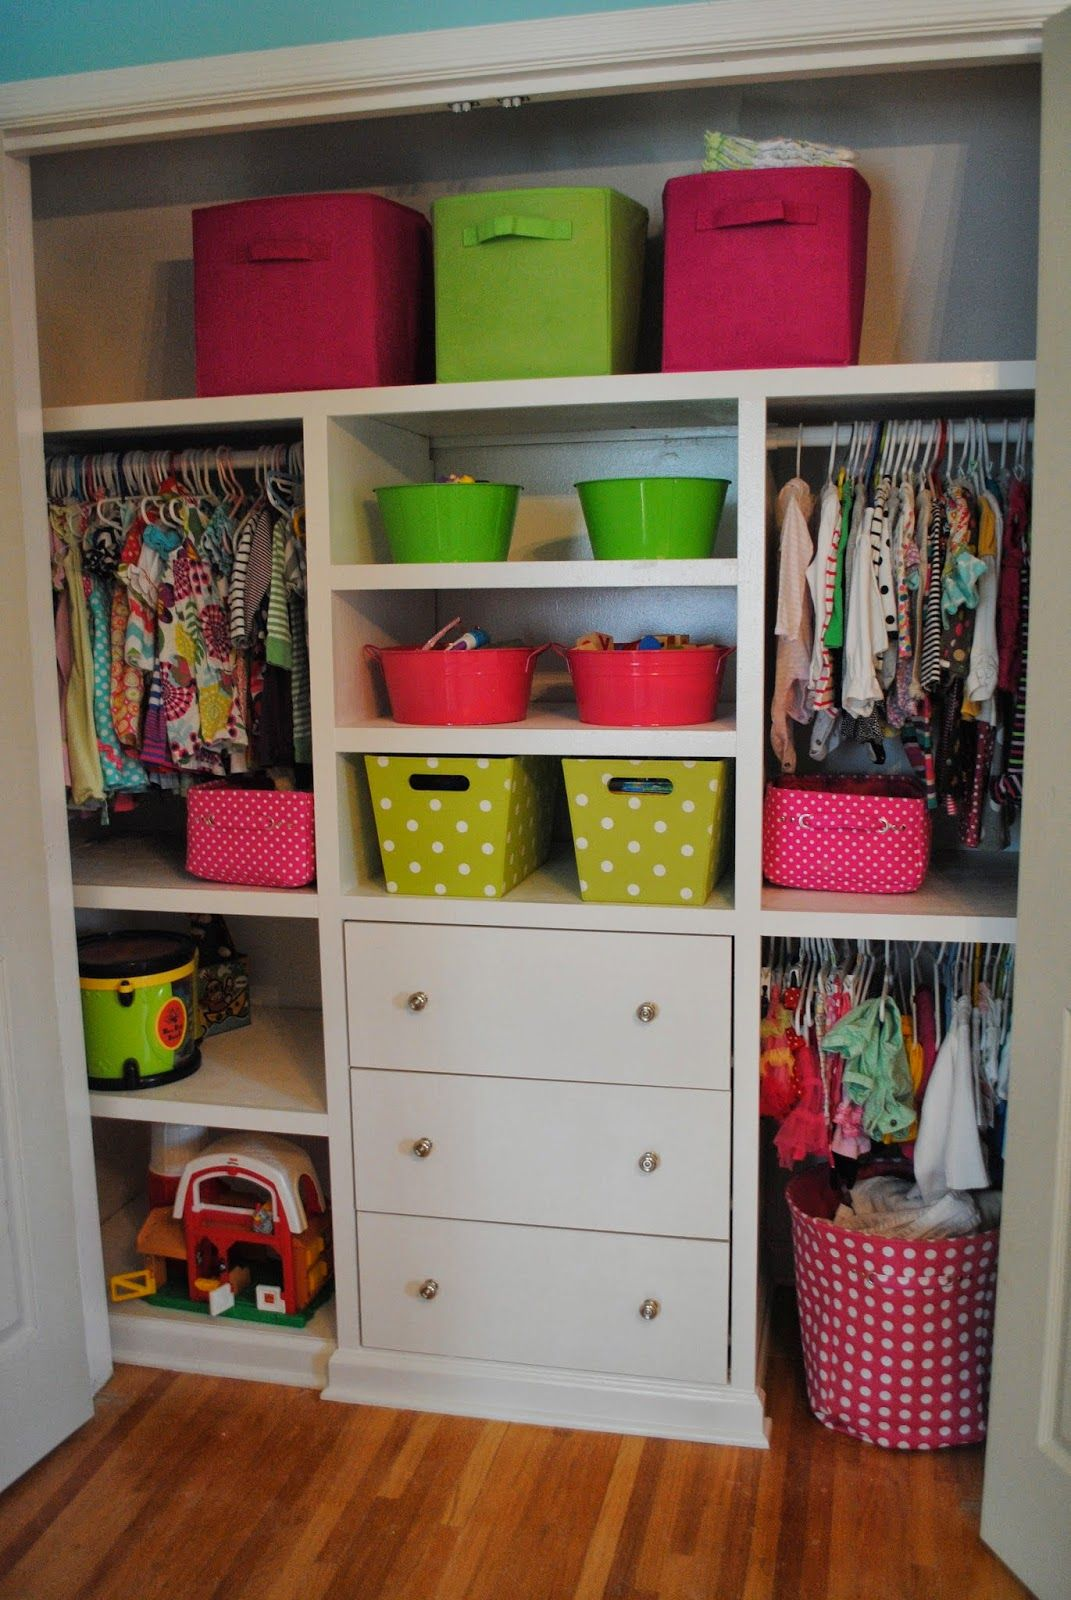 Best 25+ Toddler Closet Organization Ideas On Pinterest | Nursery Closet  Organization, Baby Closet Organization And Baby Closet Storage